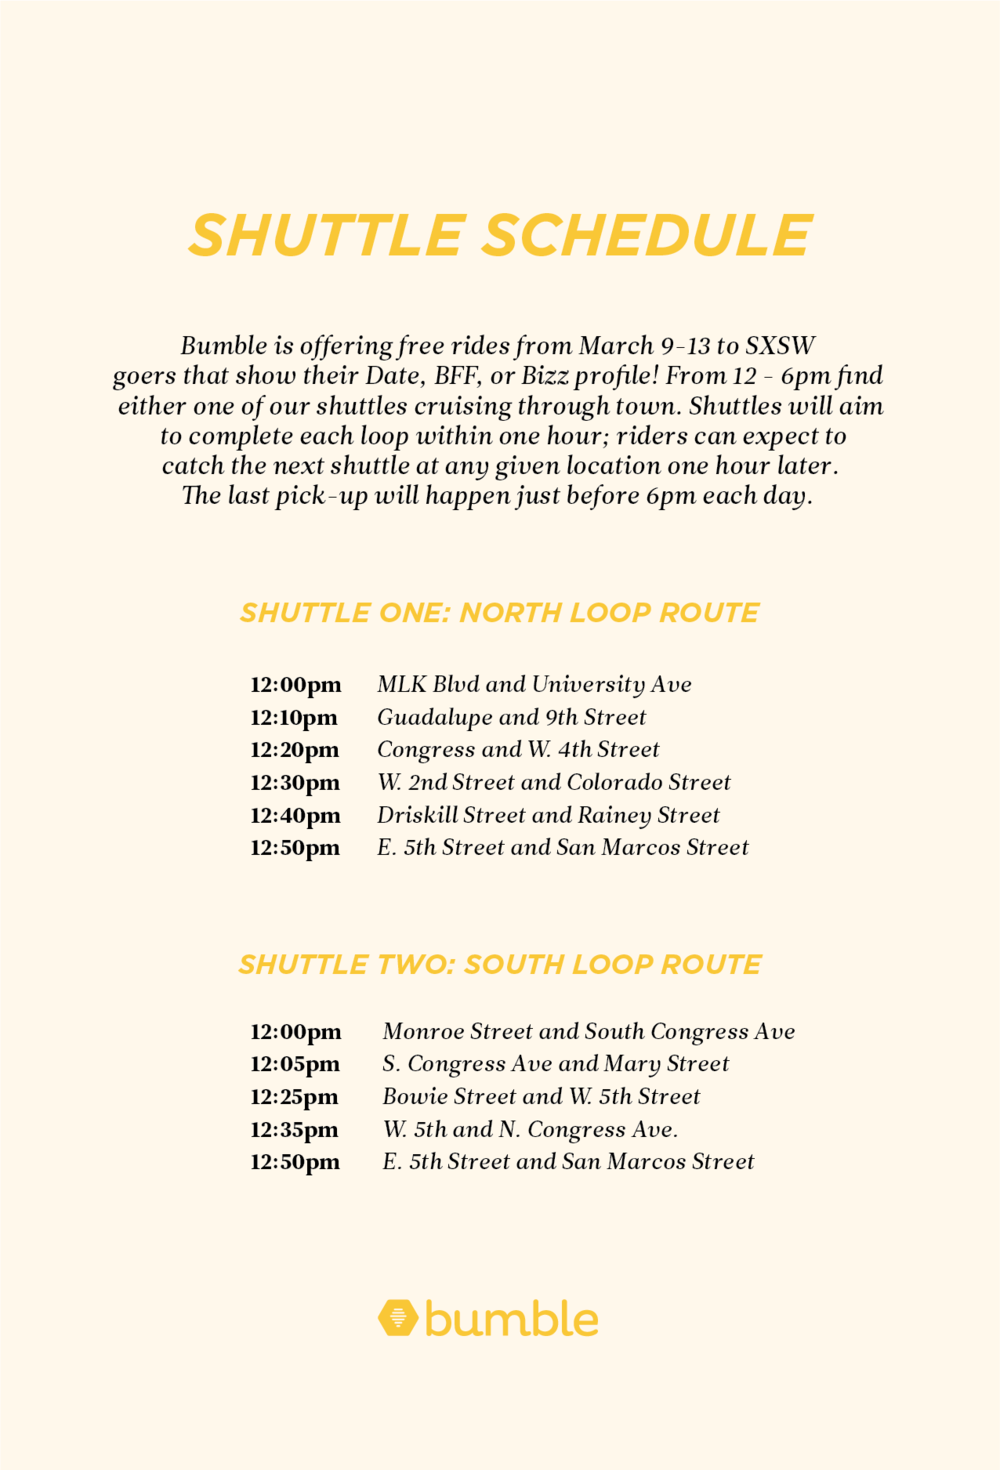 shuttle_schedule-03.png